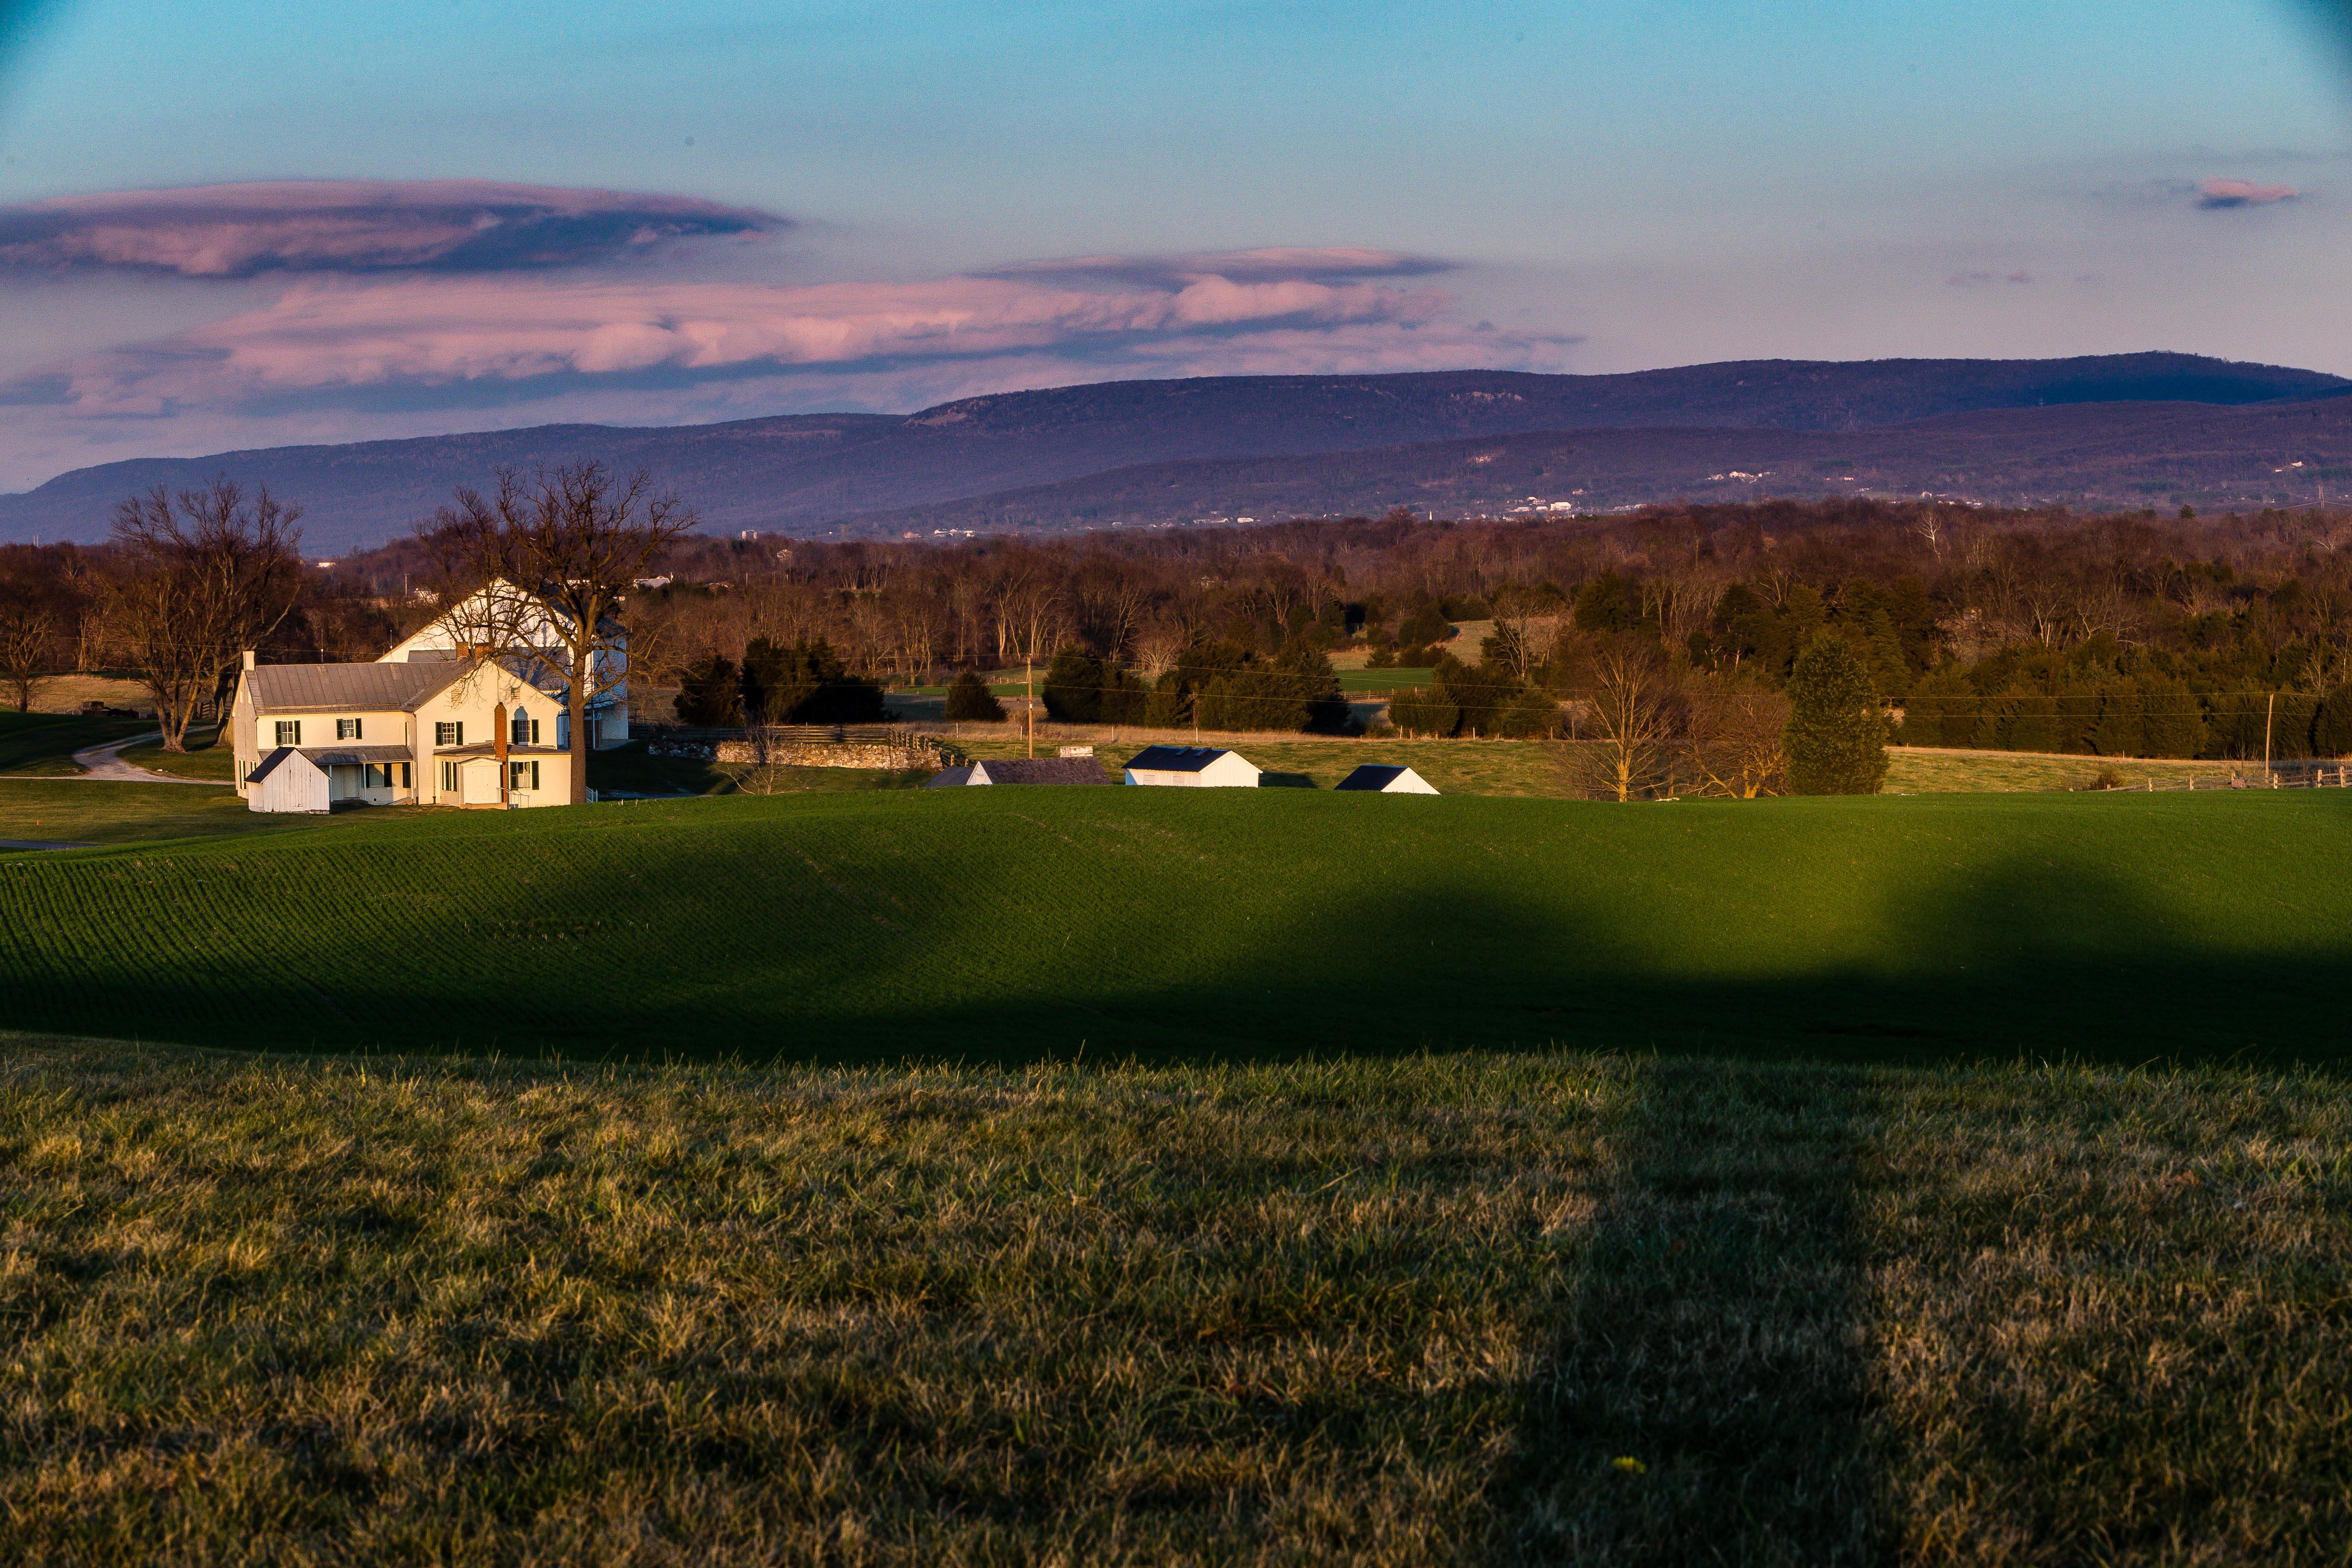 Sunset on farmhouse at Antietam